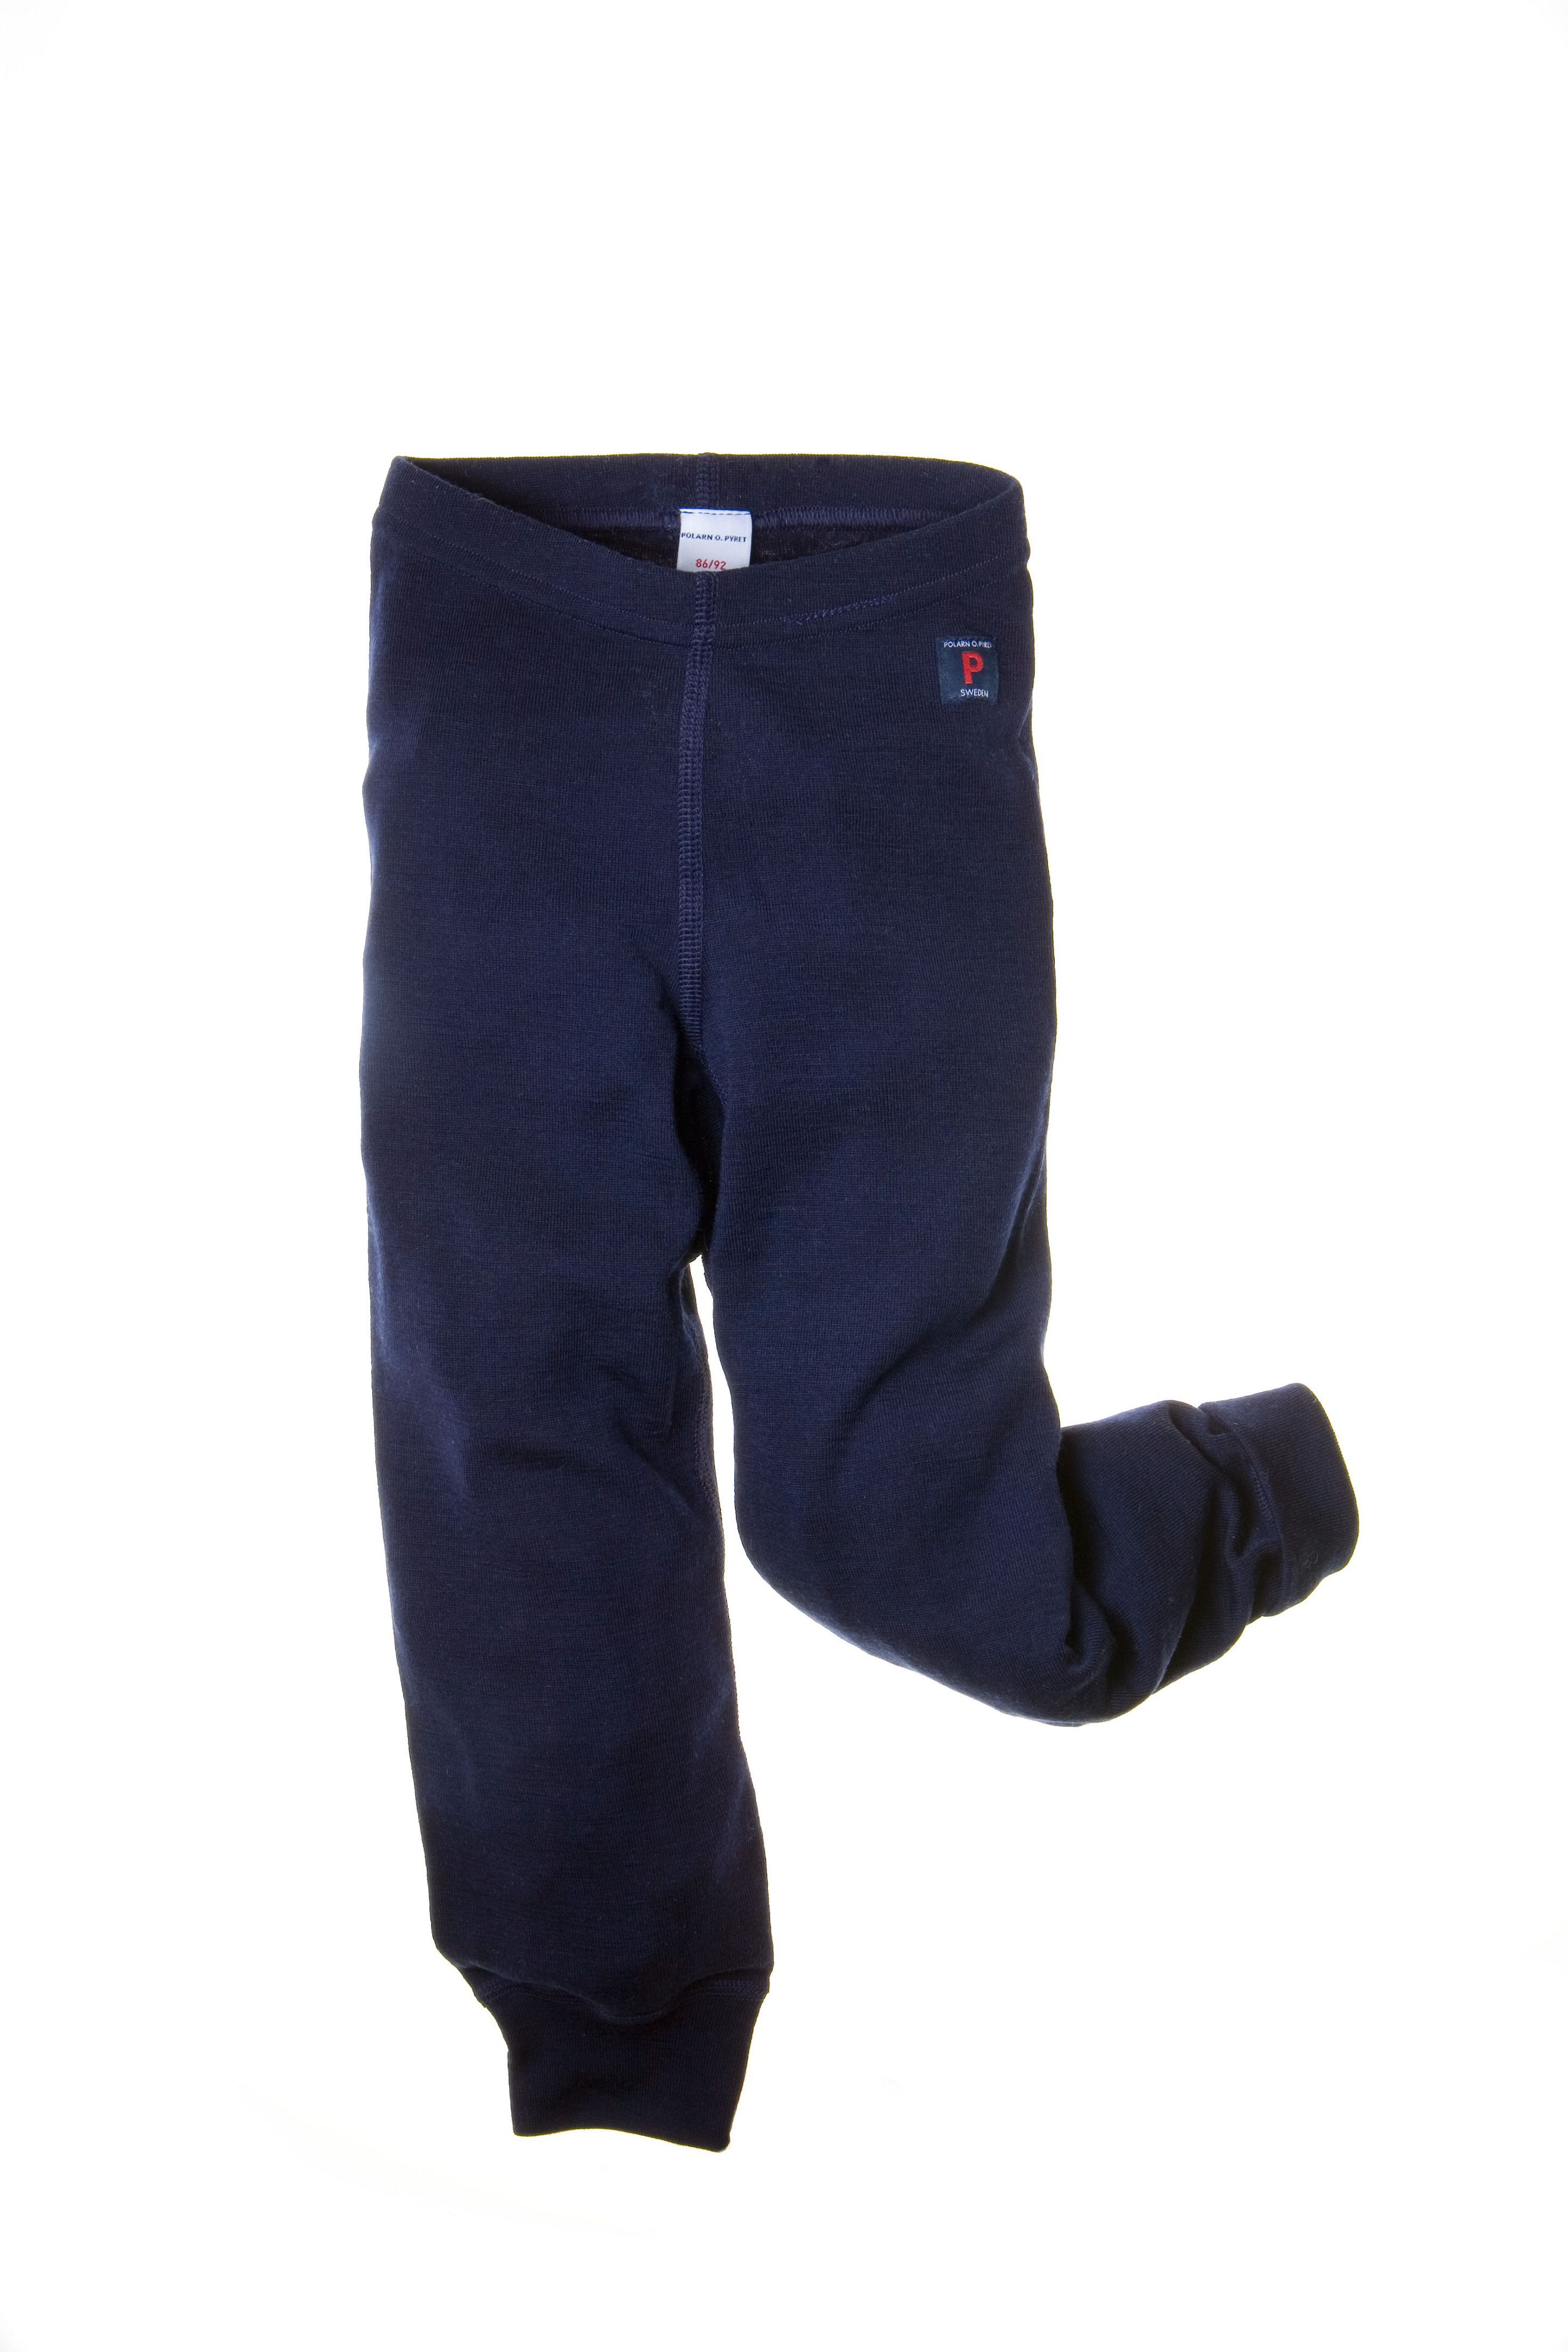 Toddler thermal merino longjohns